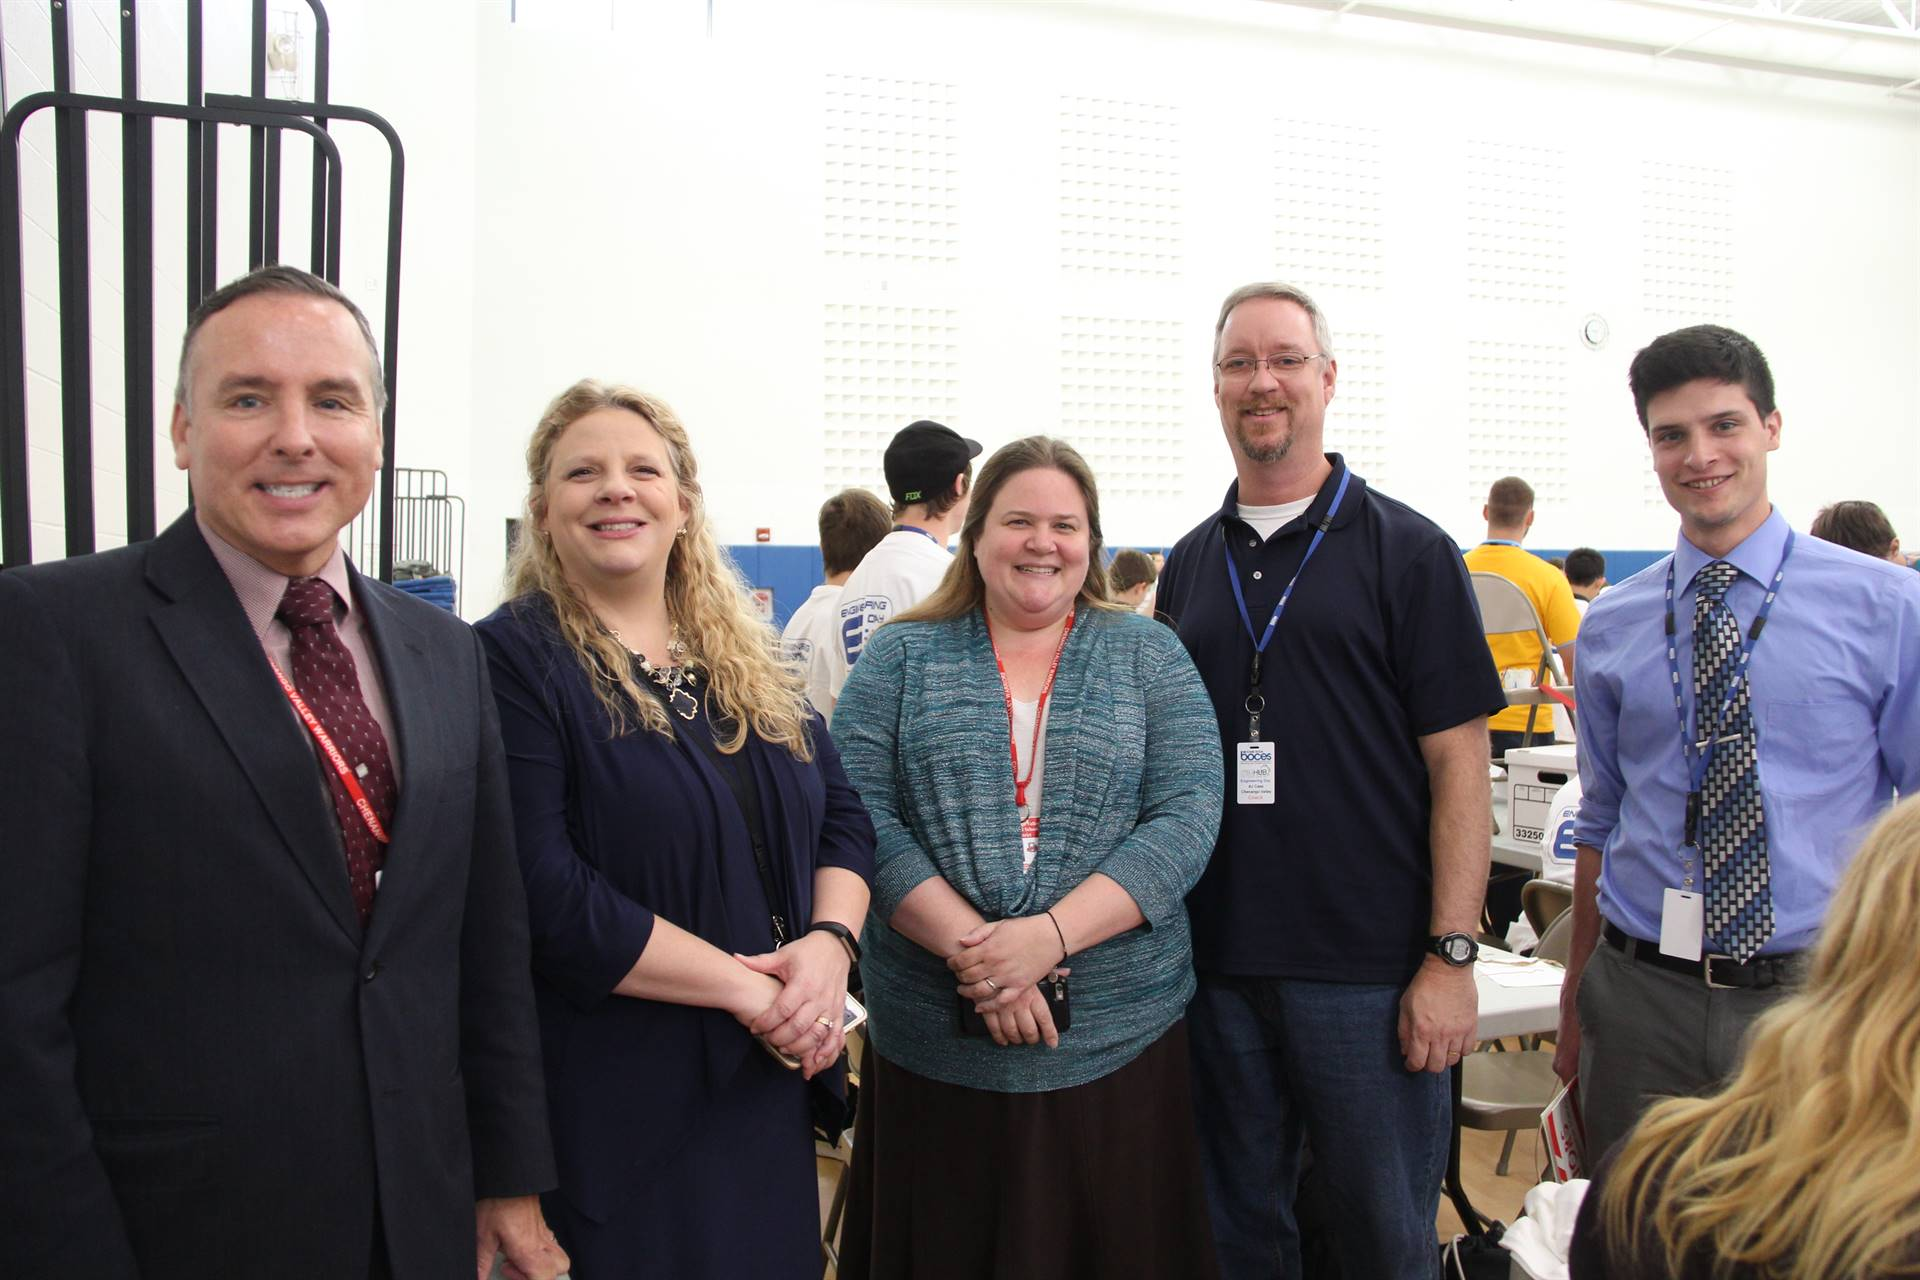 c v administrators and teachers at engineering day